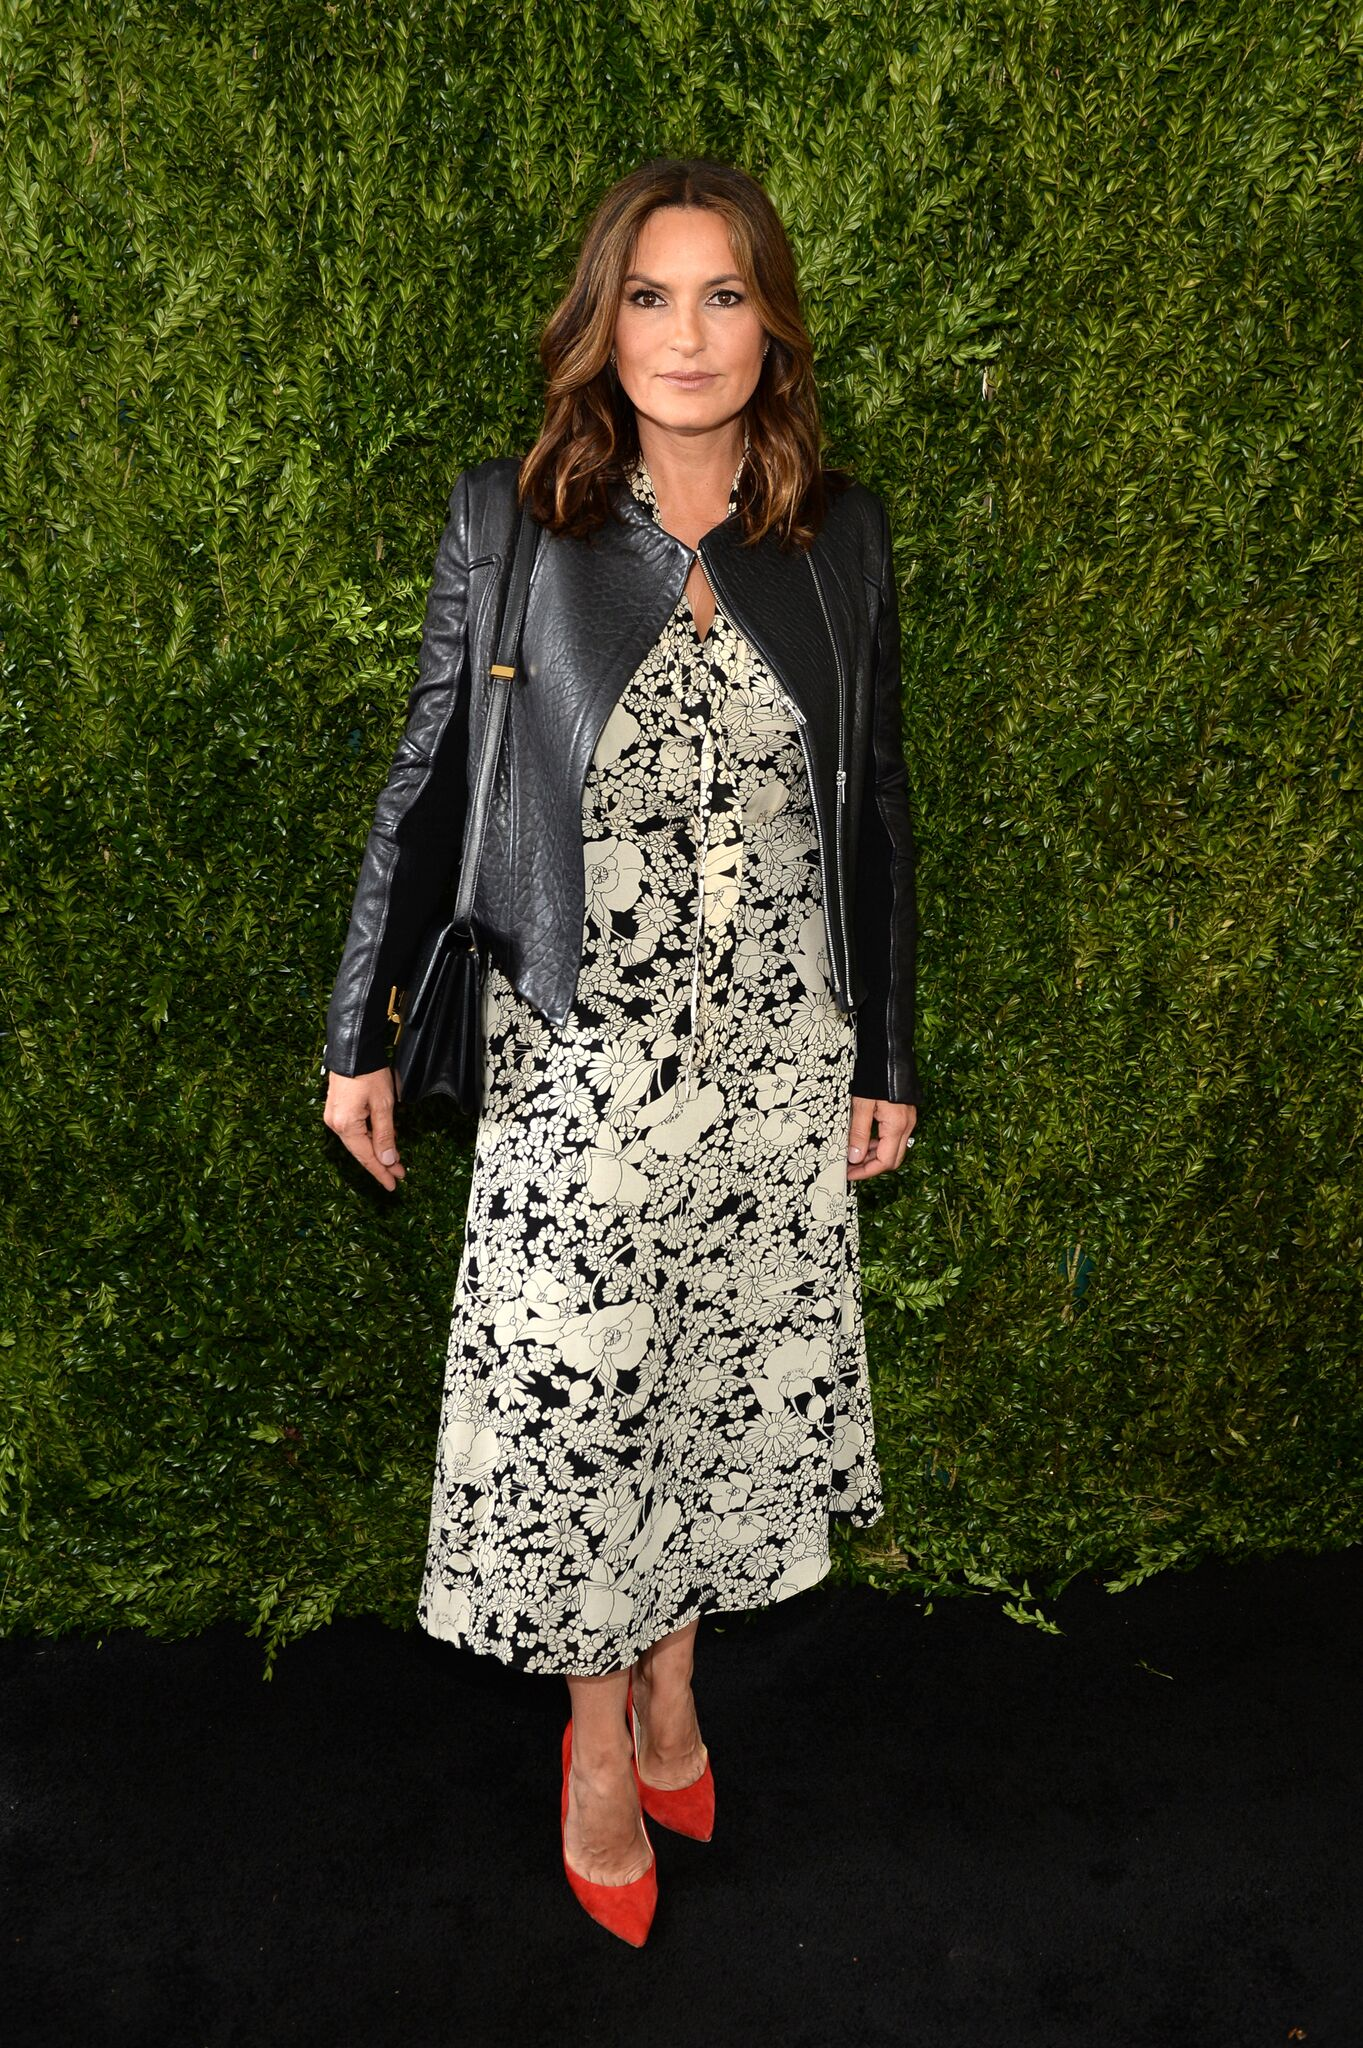 Mariska Hargitay attends Chanel Women's Filmmaker Luncheon during the 2017 Tribeca Film Festival  | Getty Images